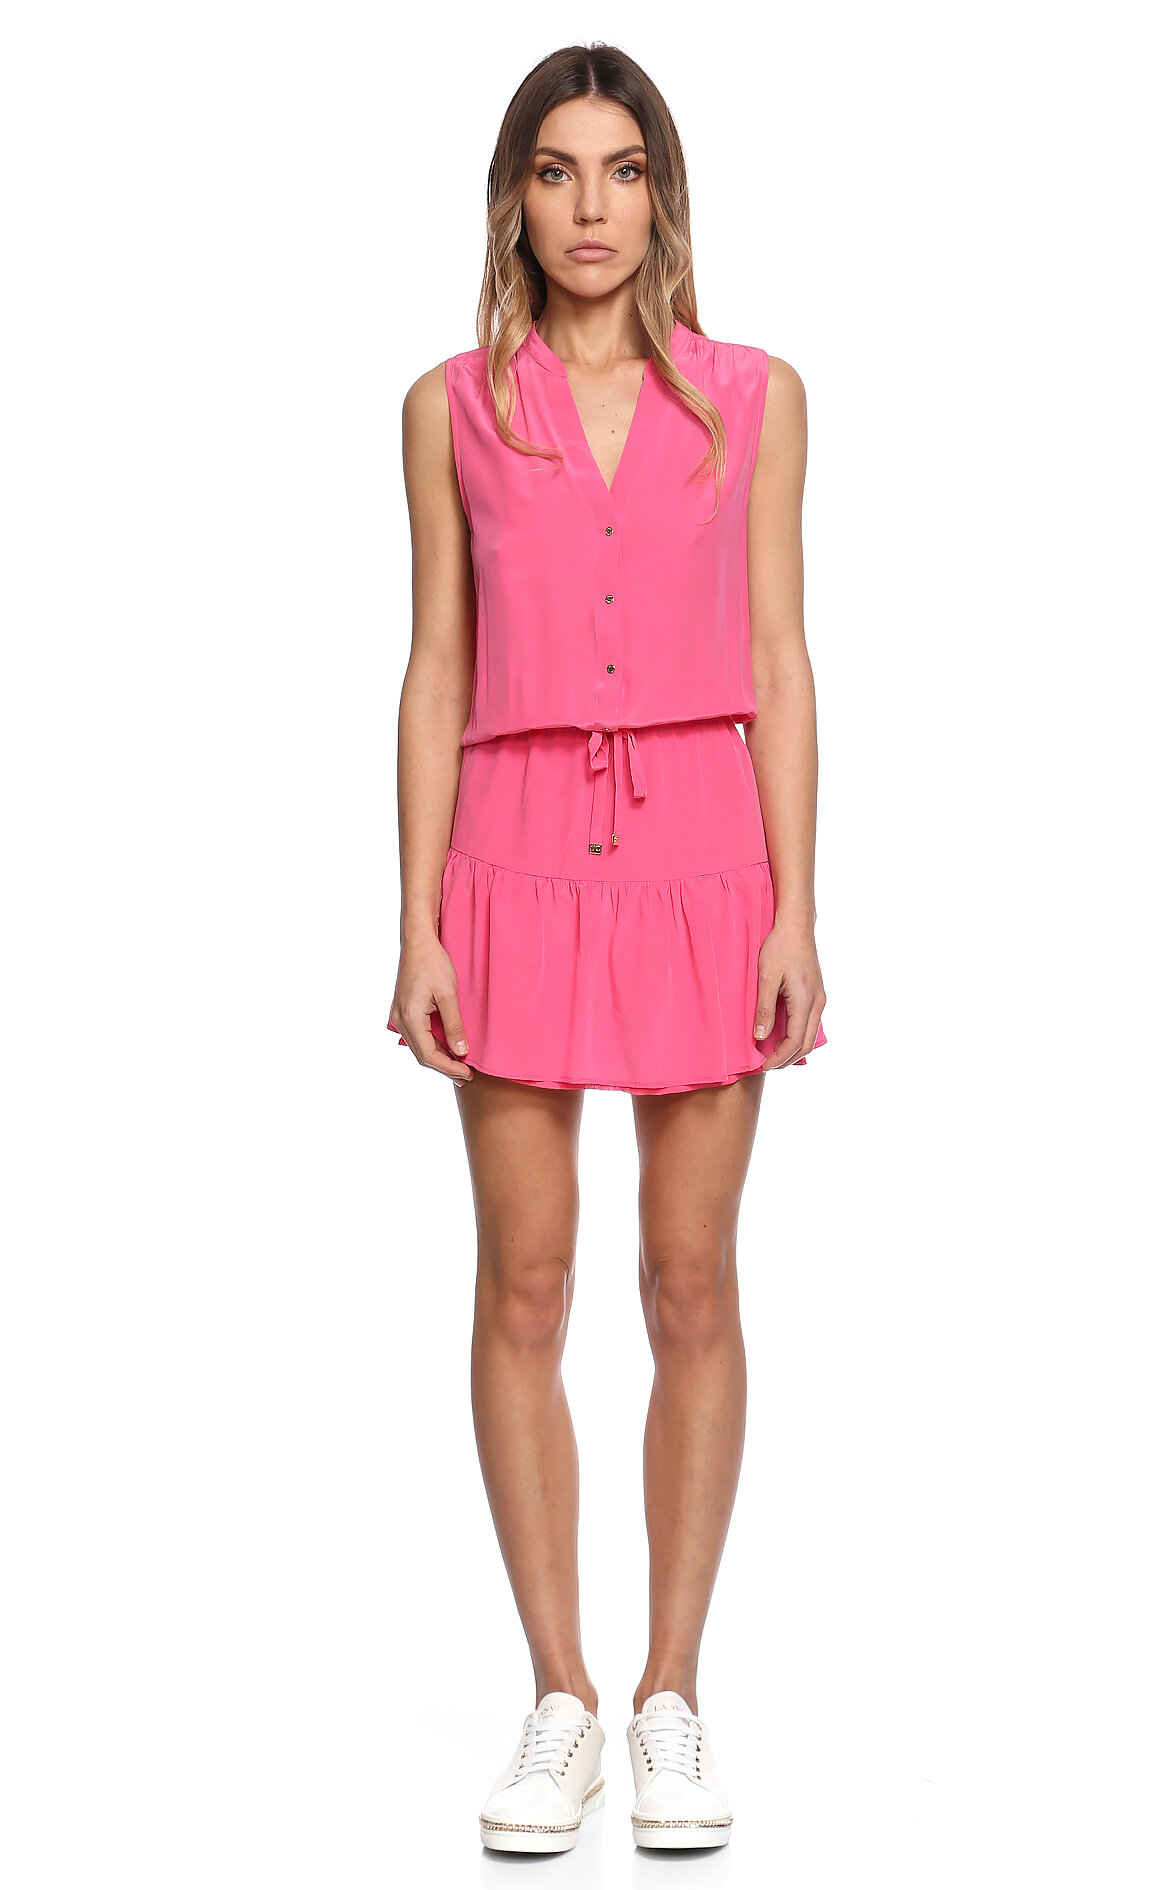 Juicy Couture-Juicy Couture Mini Pembe Elbise